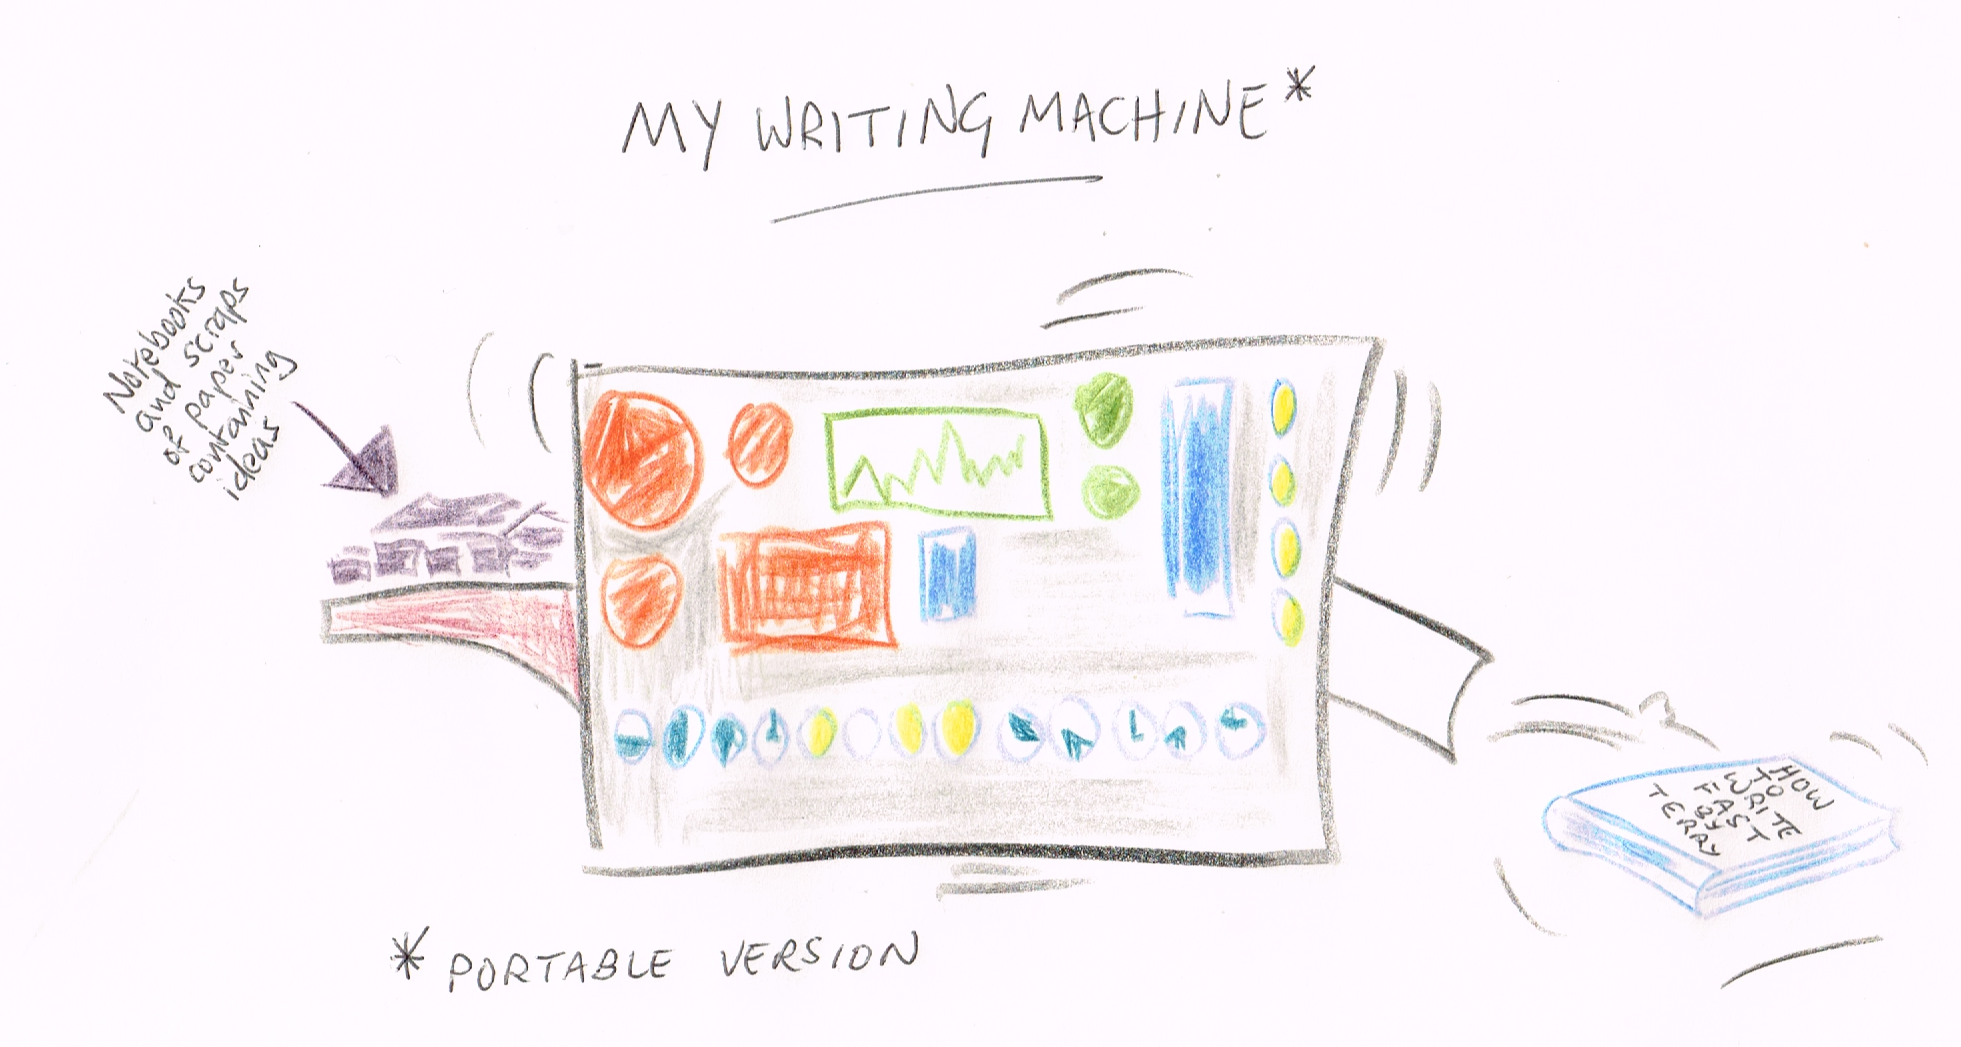 My writing machine, by Terry Freedman 2017. Click on the picture to see a larger version.